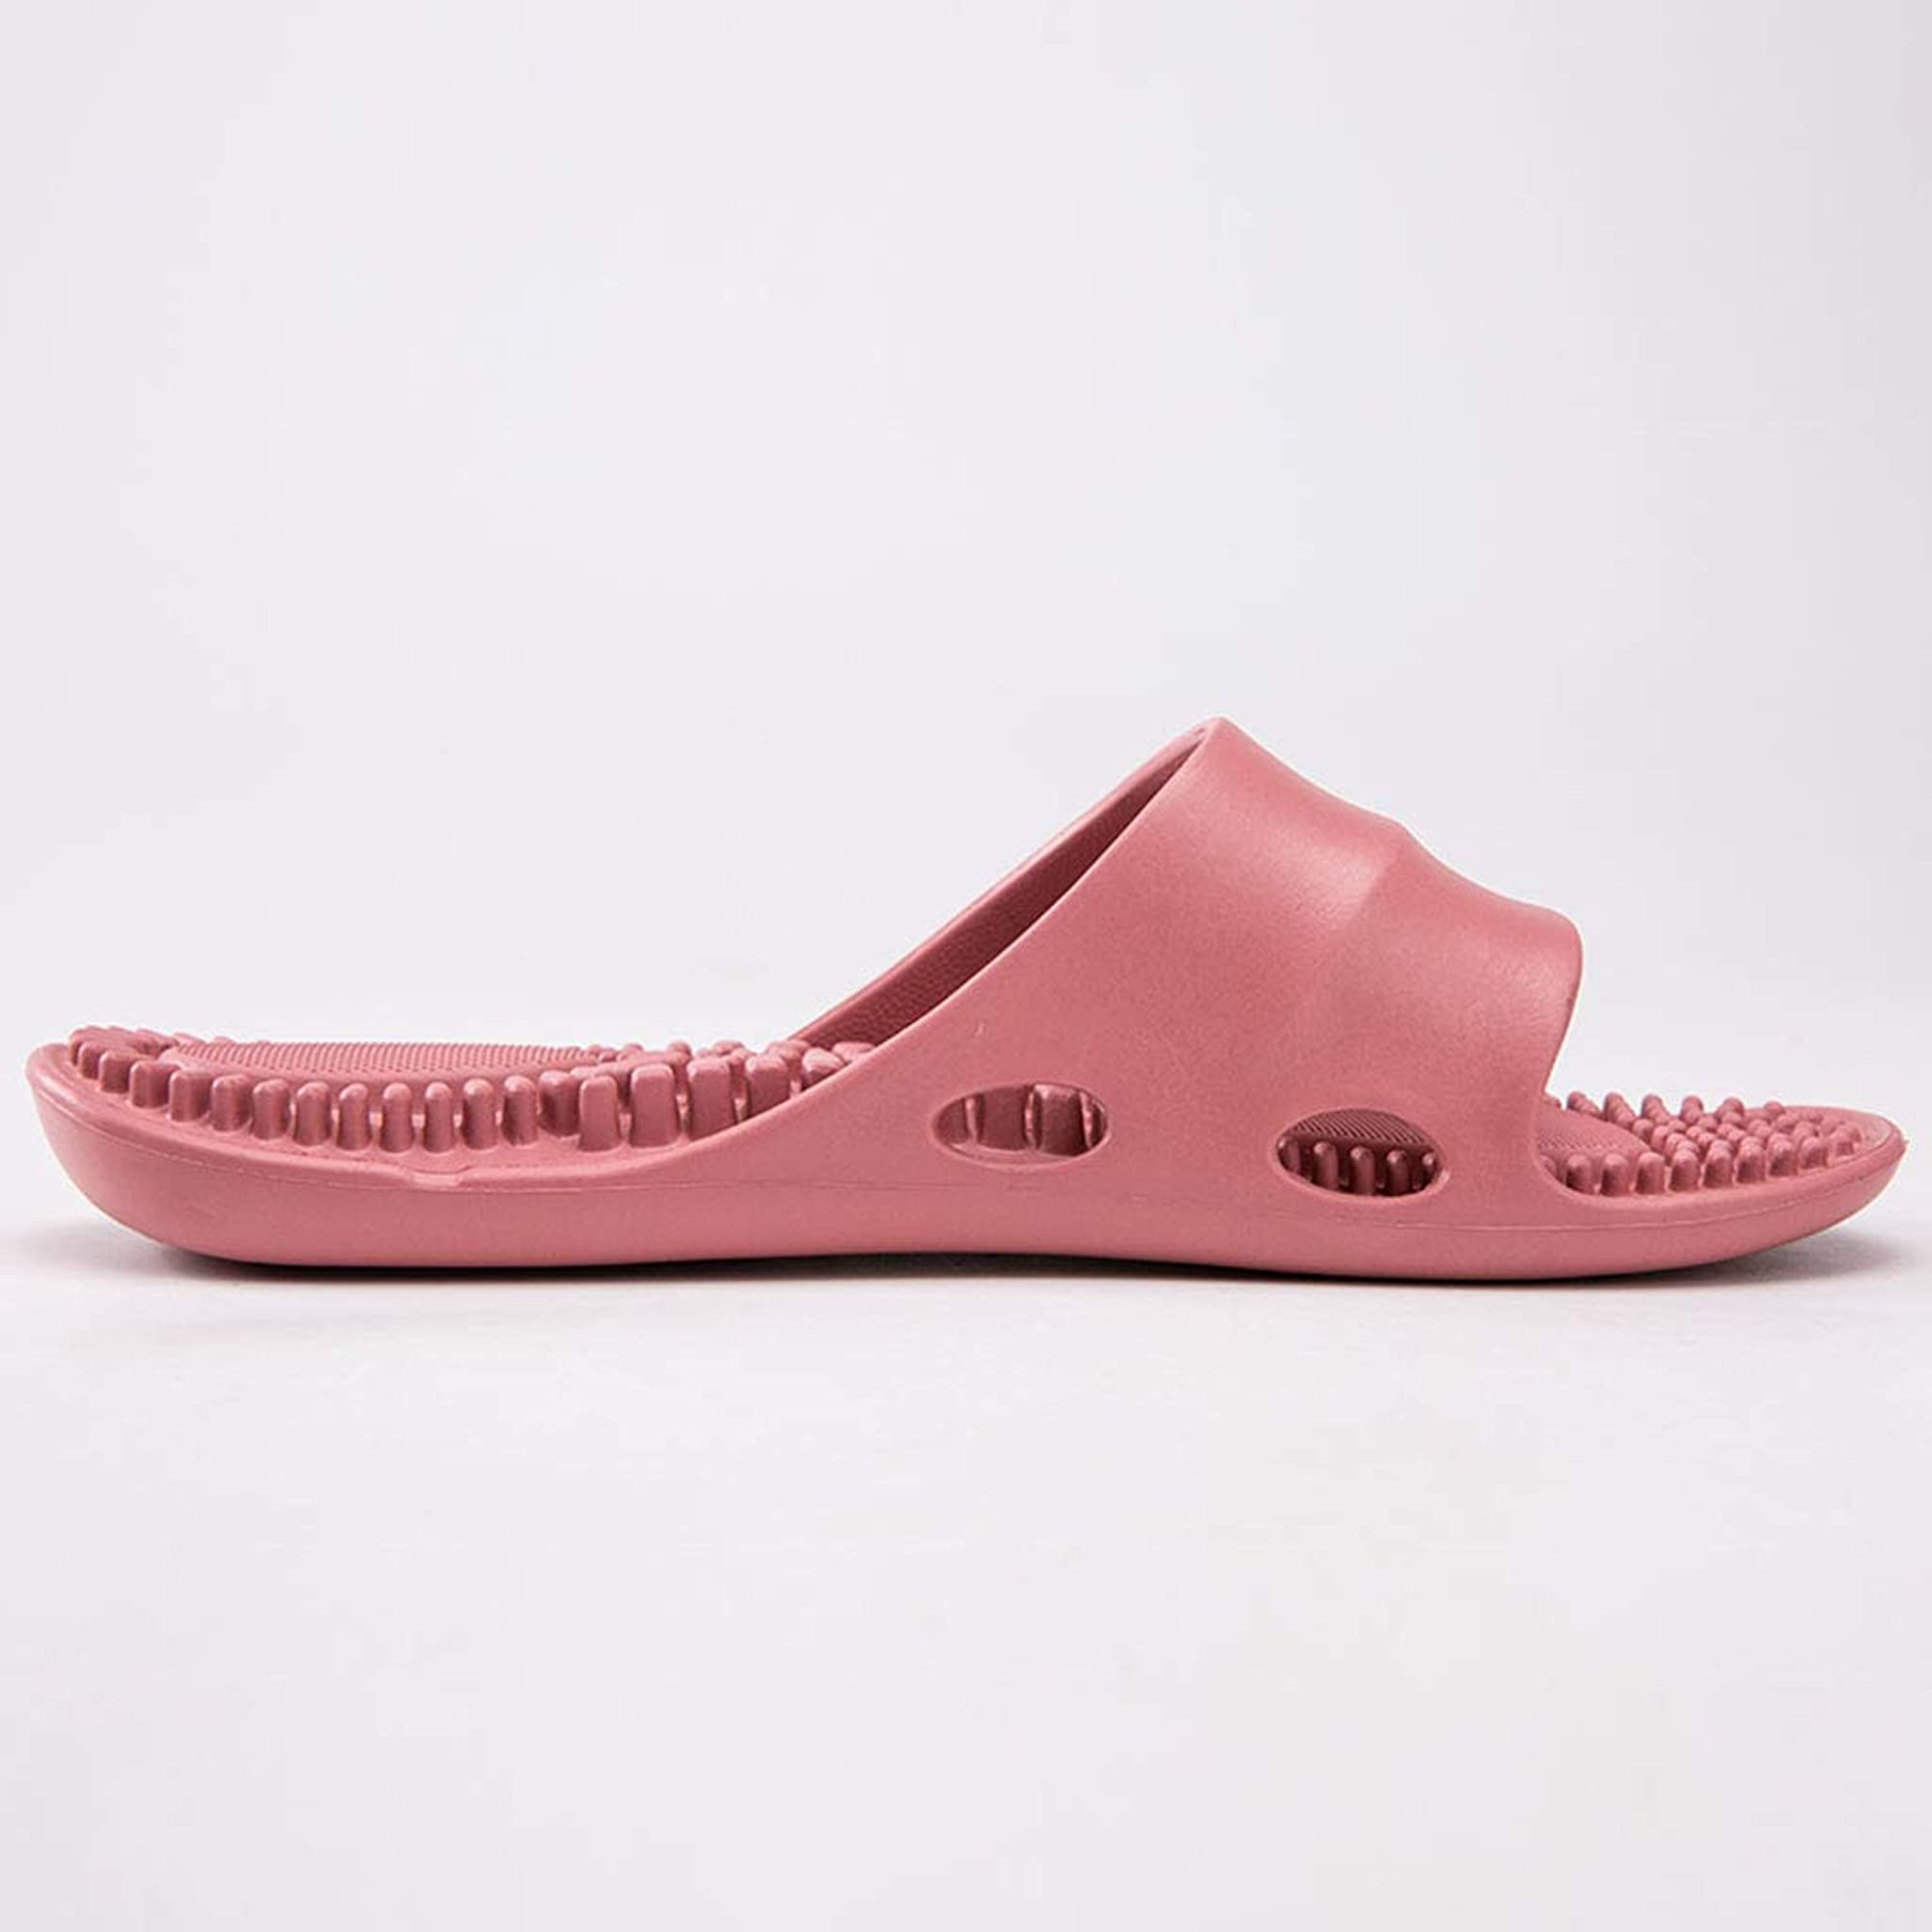 Foot Reflexology Slippers For Women